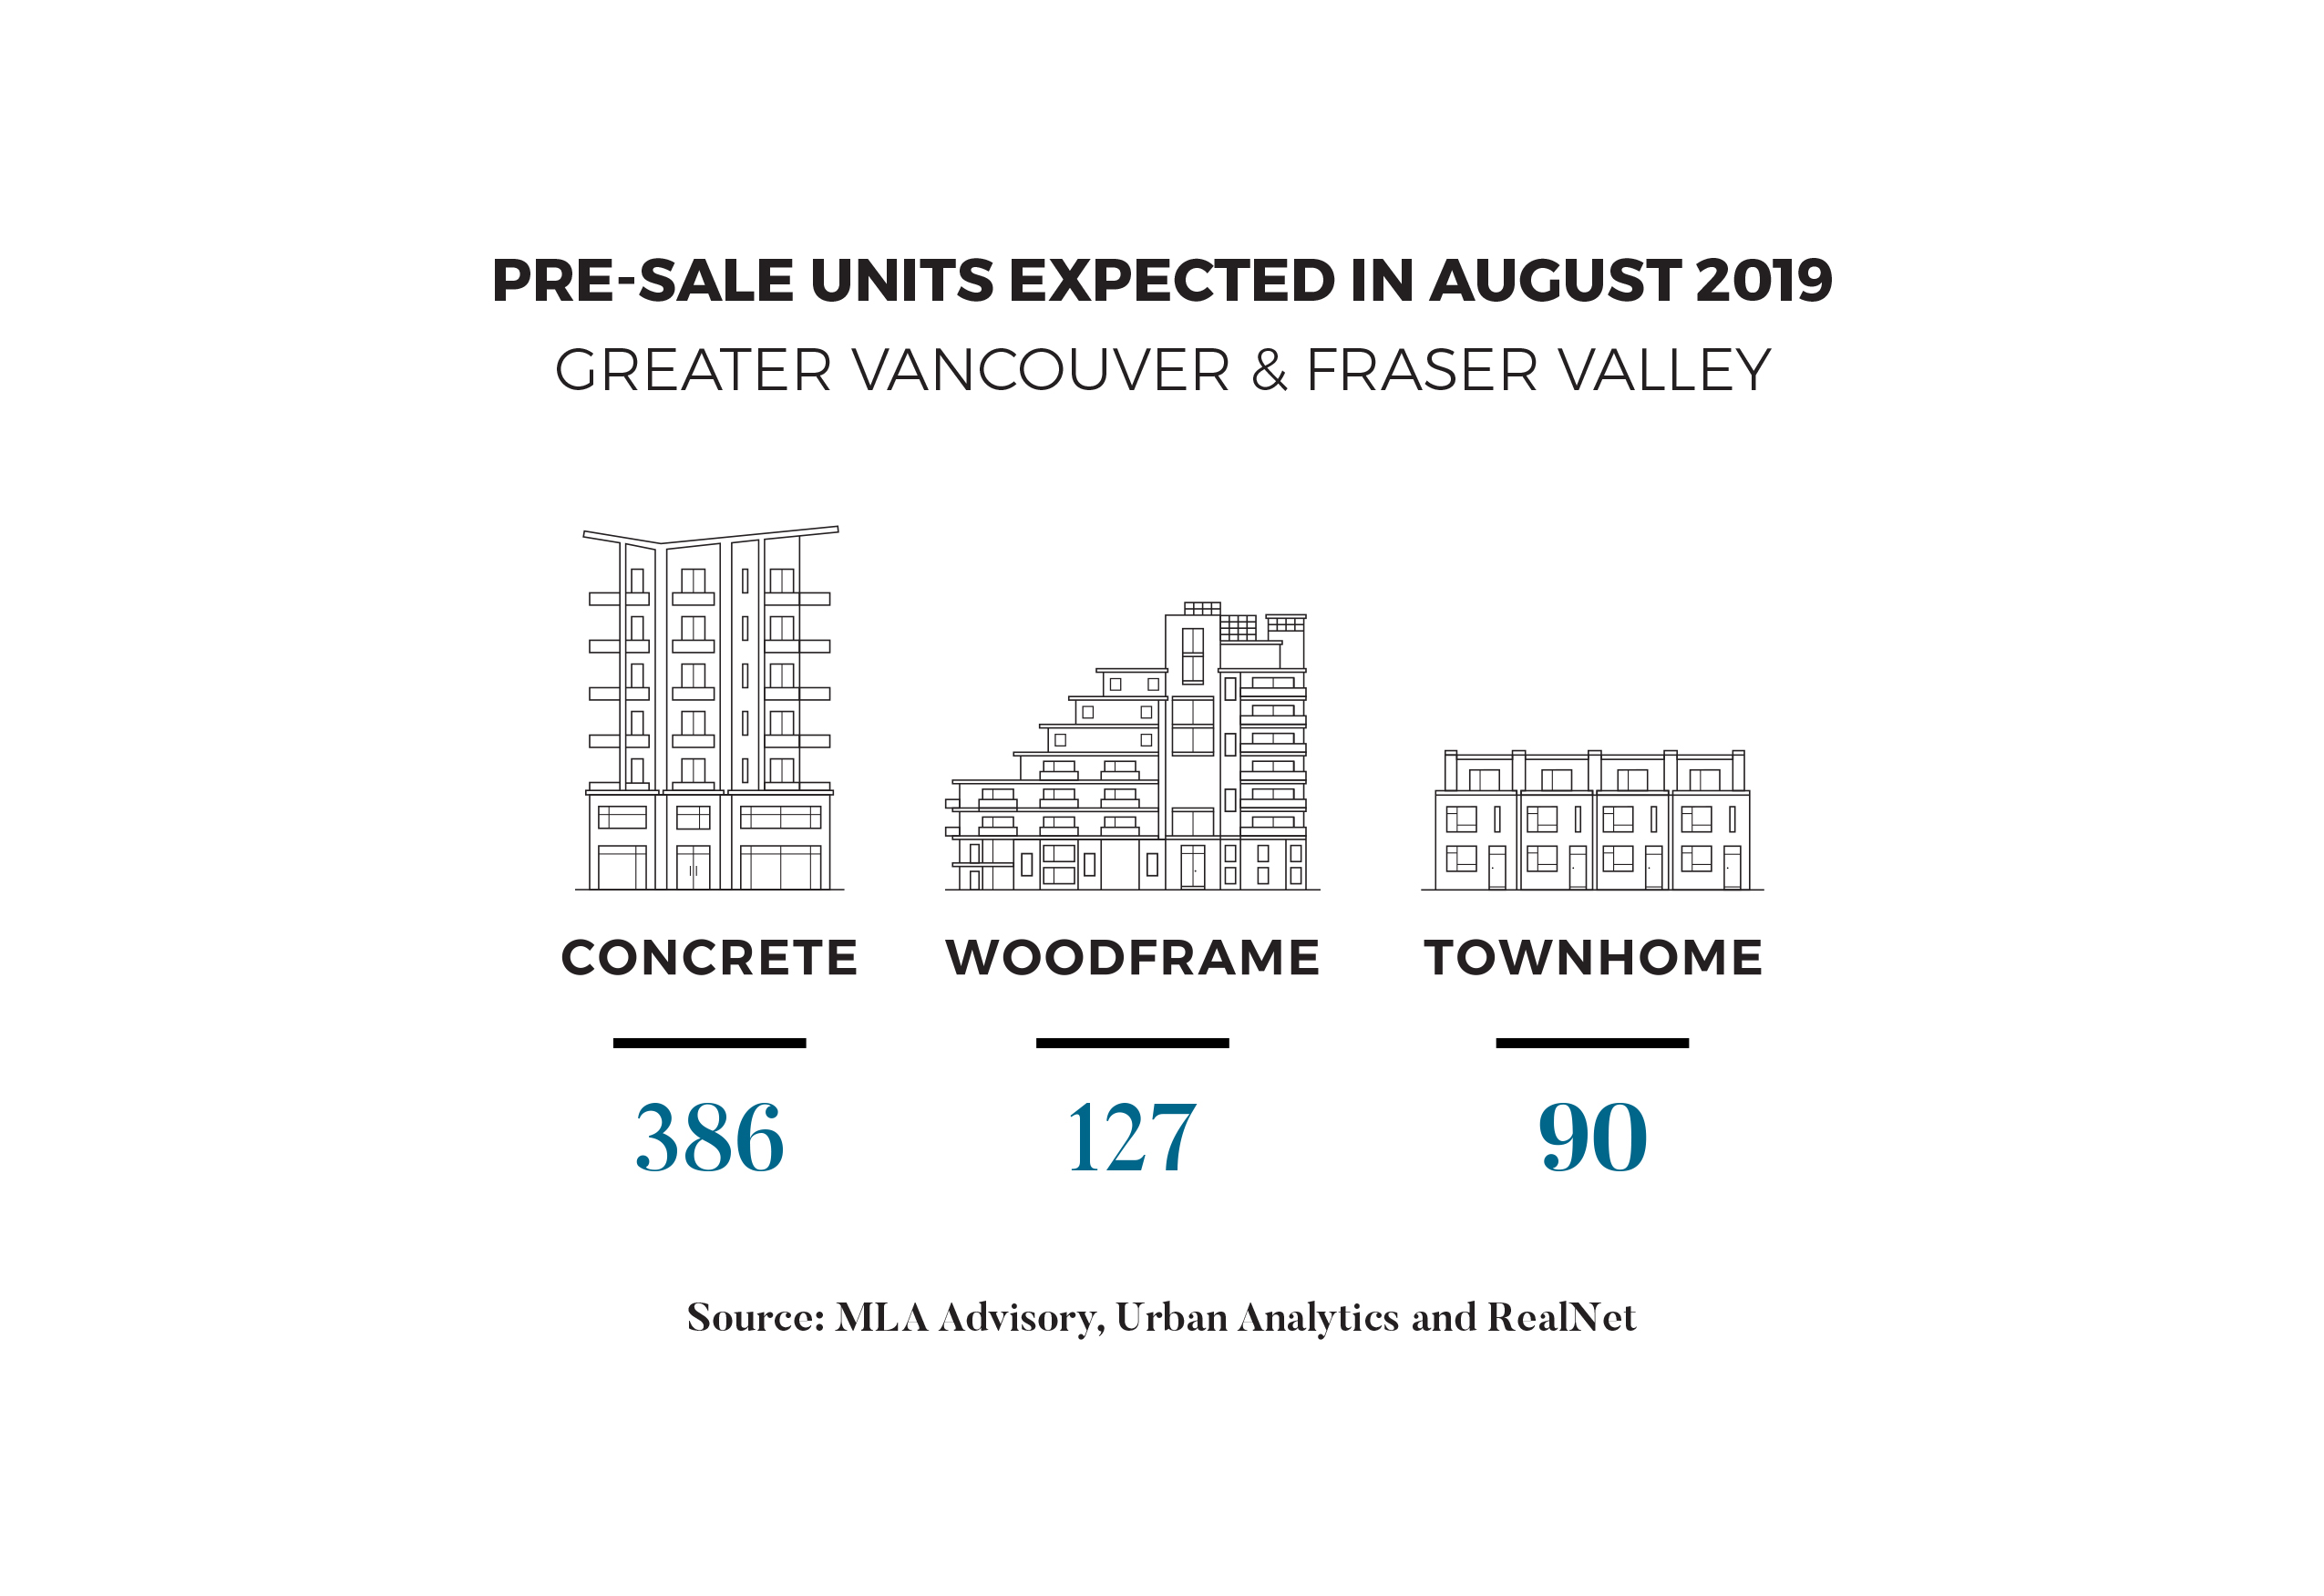 AUGUST TO BRING OVER 600 PRE-SALE UNITS TO MARKET